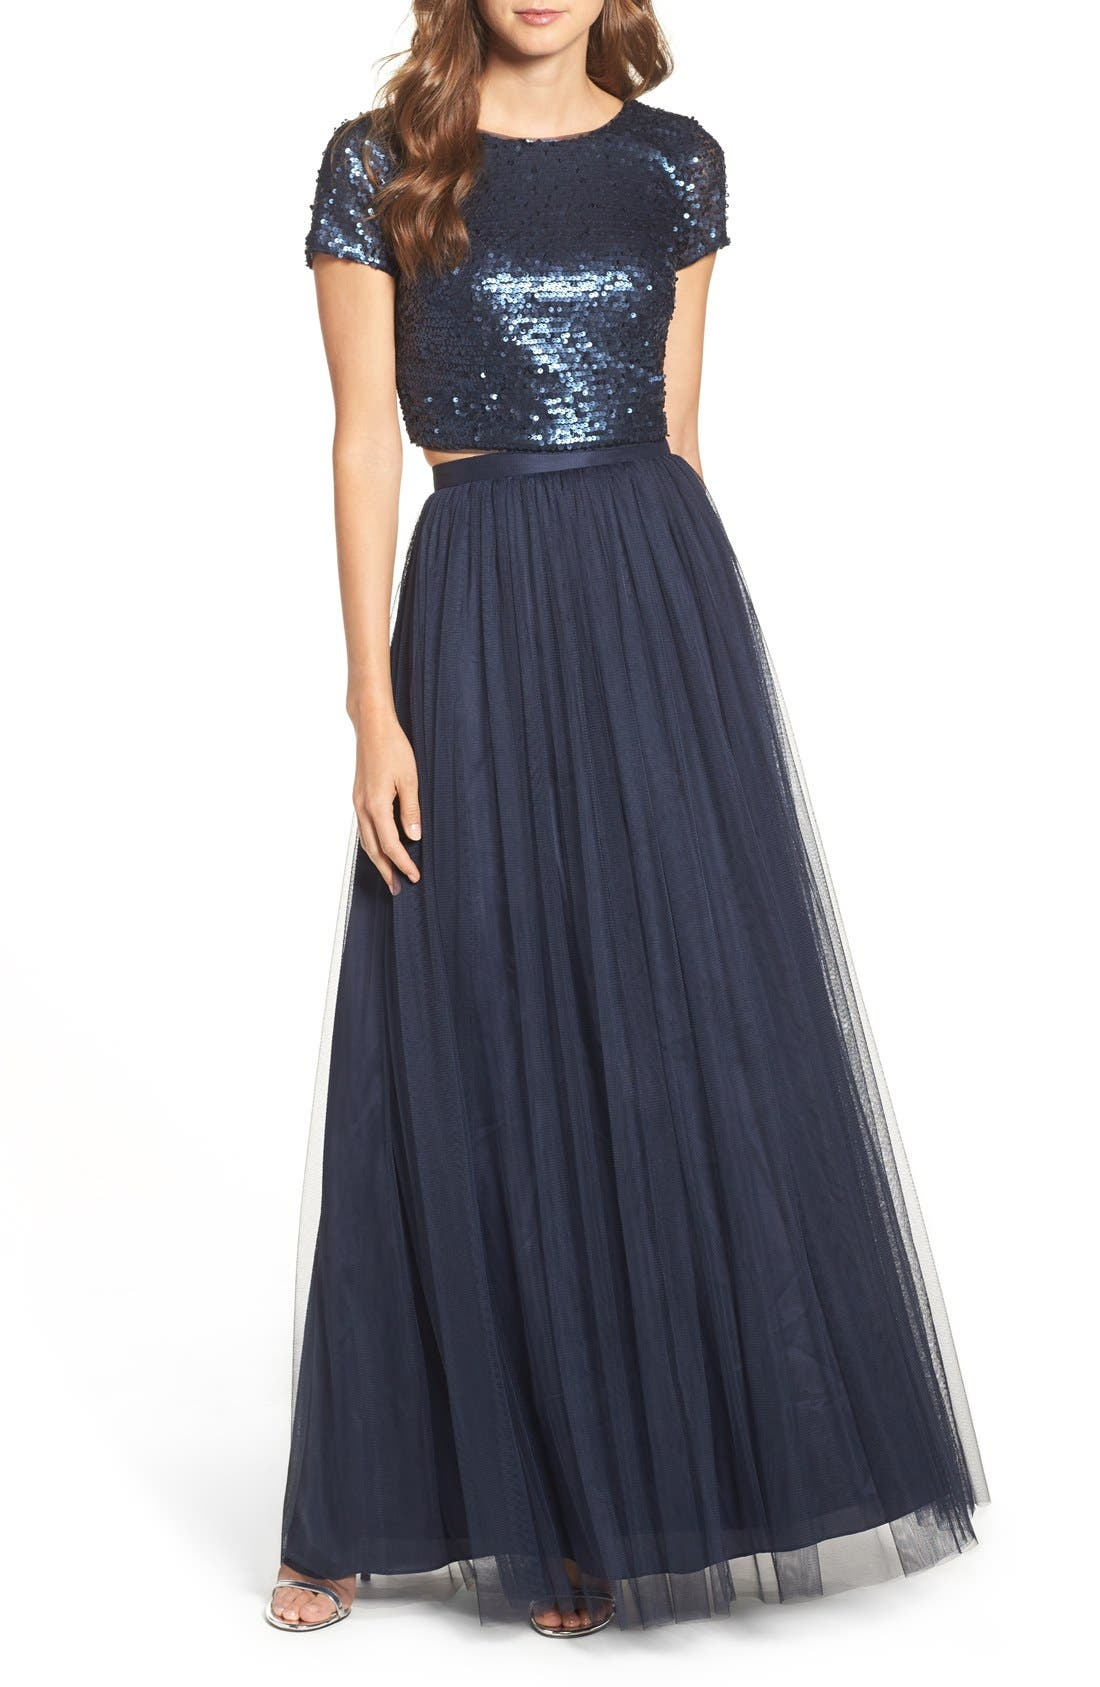 Alternate Image 1 Selected - Adrianna Papell Embellished Two Piece Gown